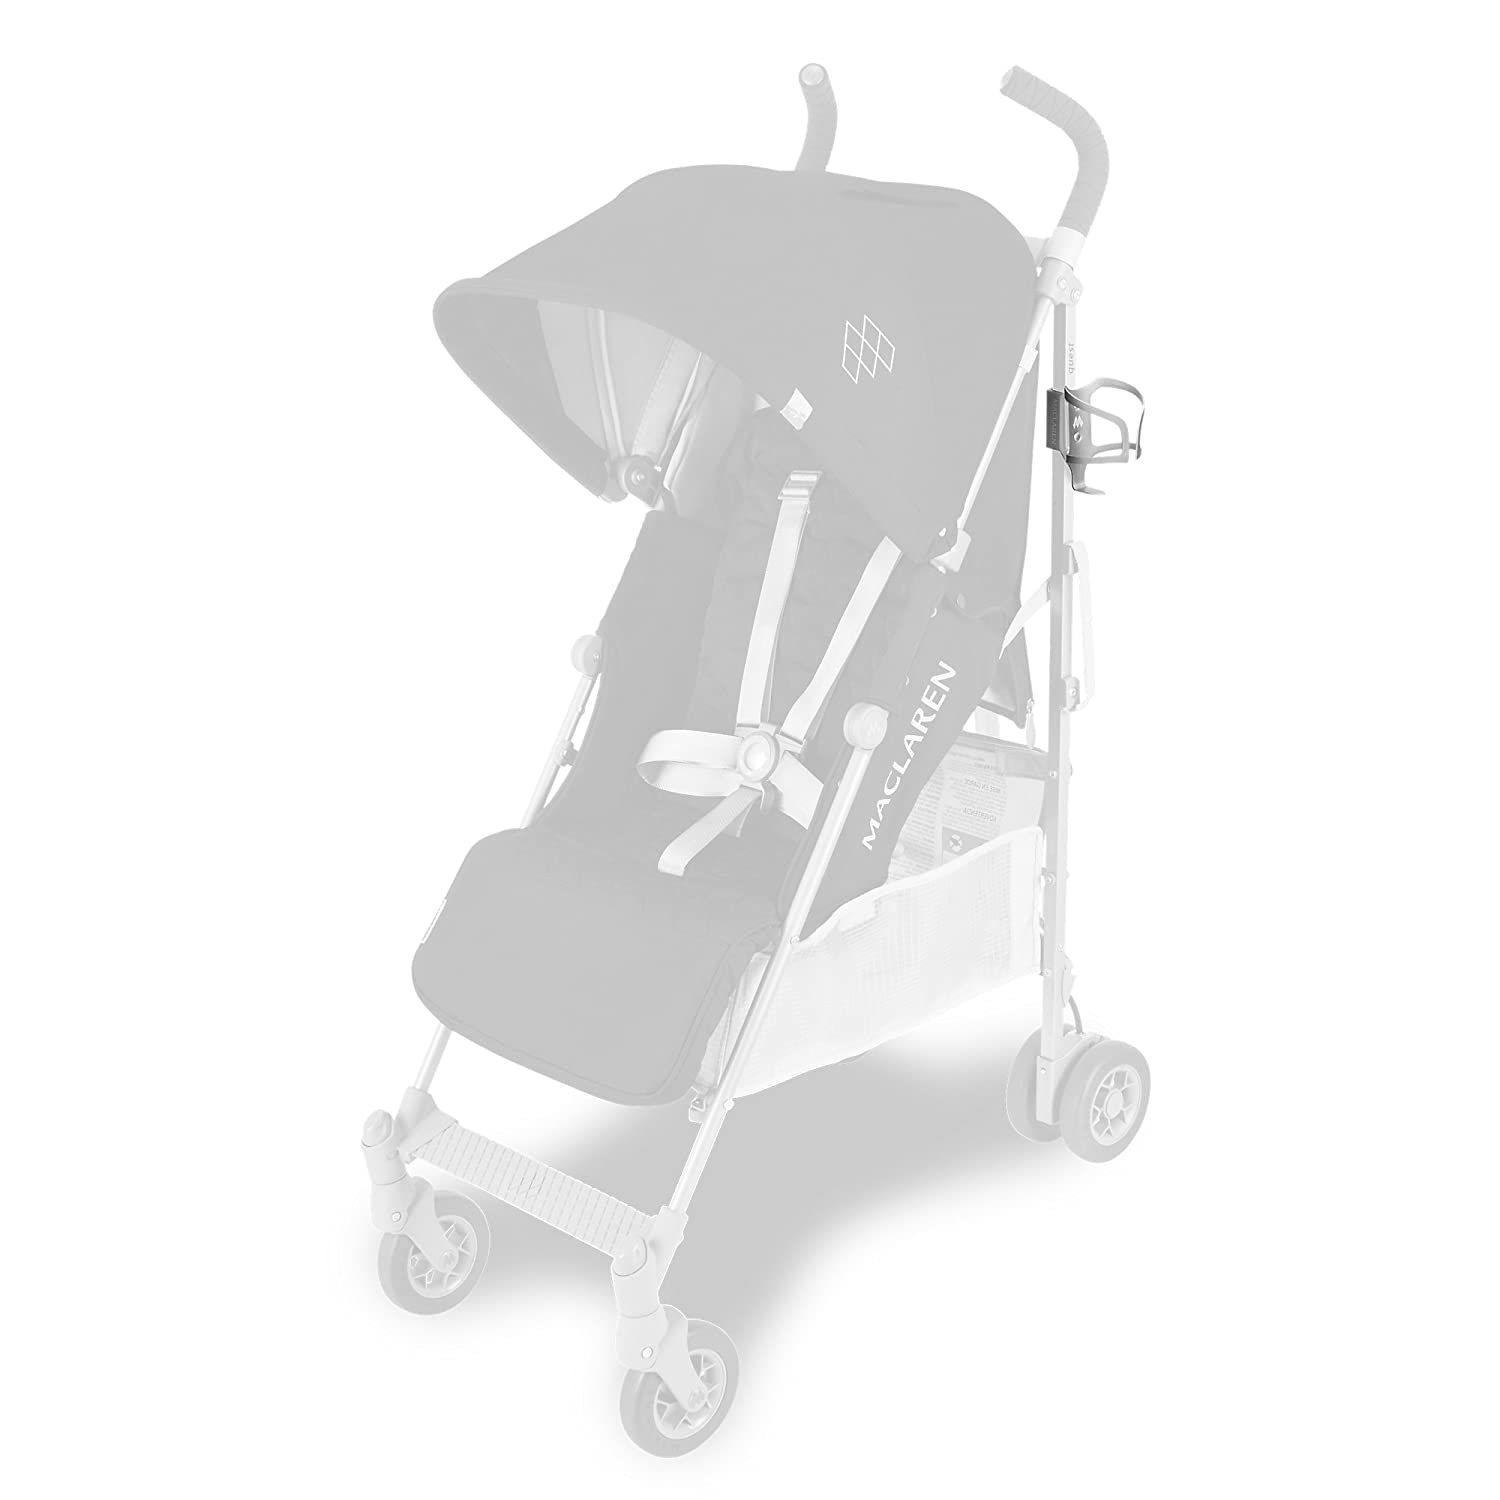 Maclaren Cupholder- Must Have Stroller Accessory Easily securely attaches to The Frame of All Maclarens and All Umbrella-fold Stroller Brands Fits Cups and Bottles with 2.9in//7.4cm Circumference.